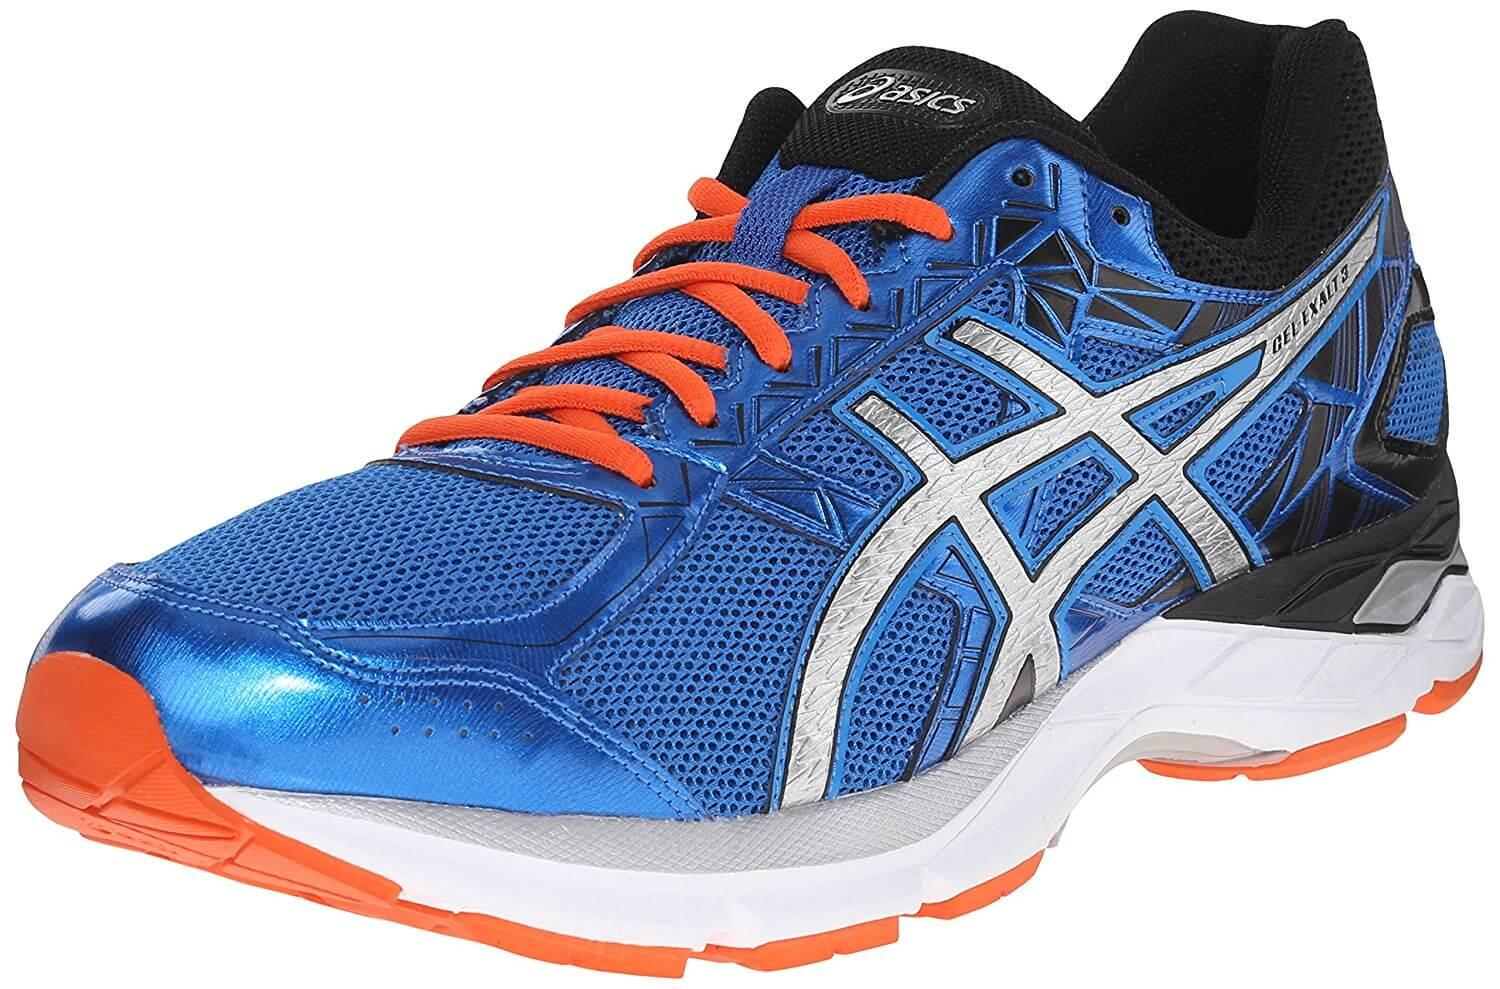 An in depth review of the ASICS Gel Exalt 3